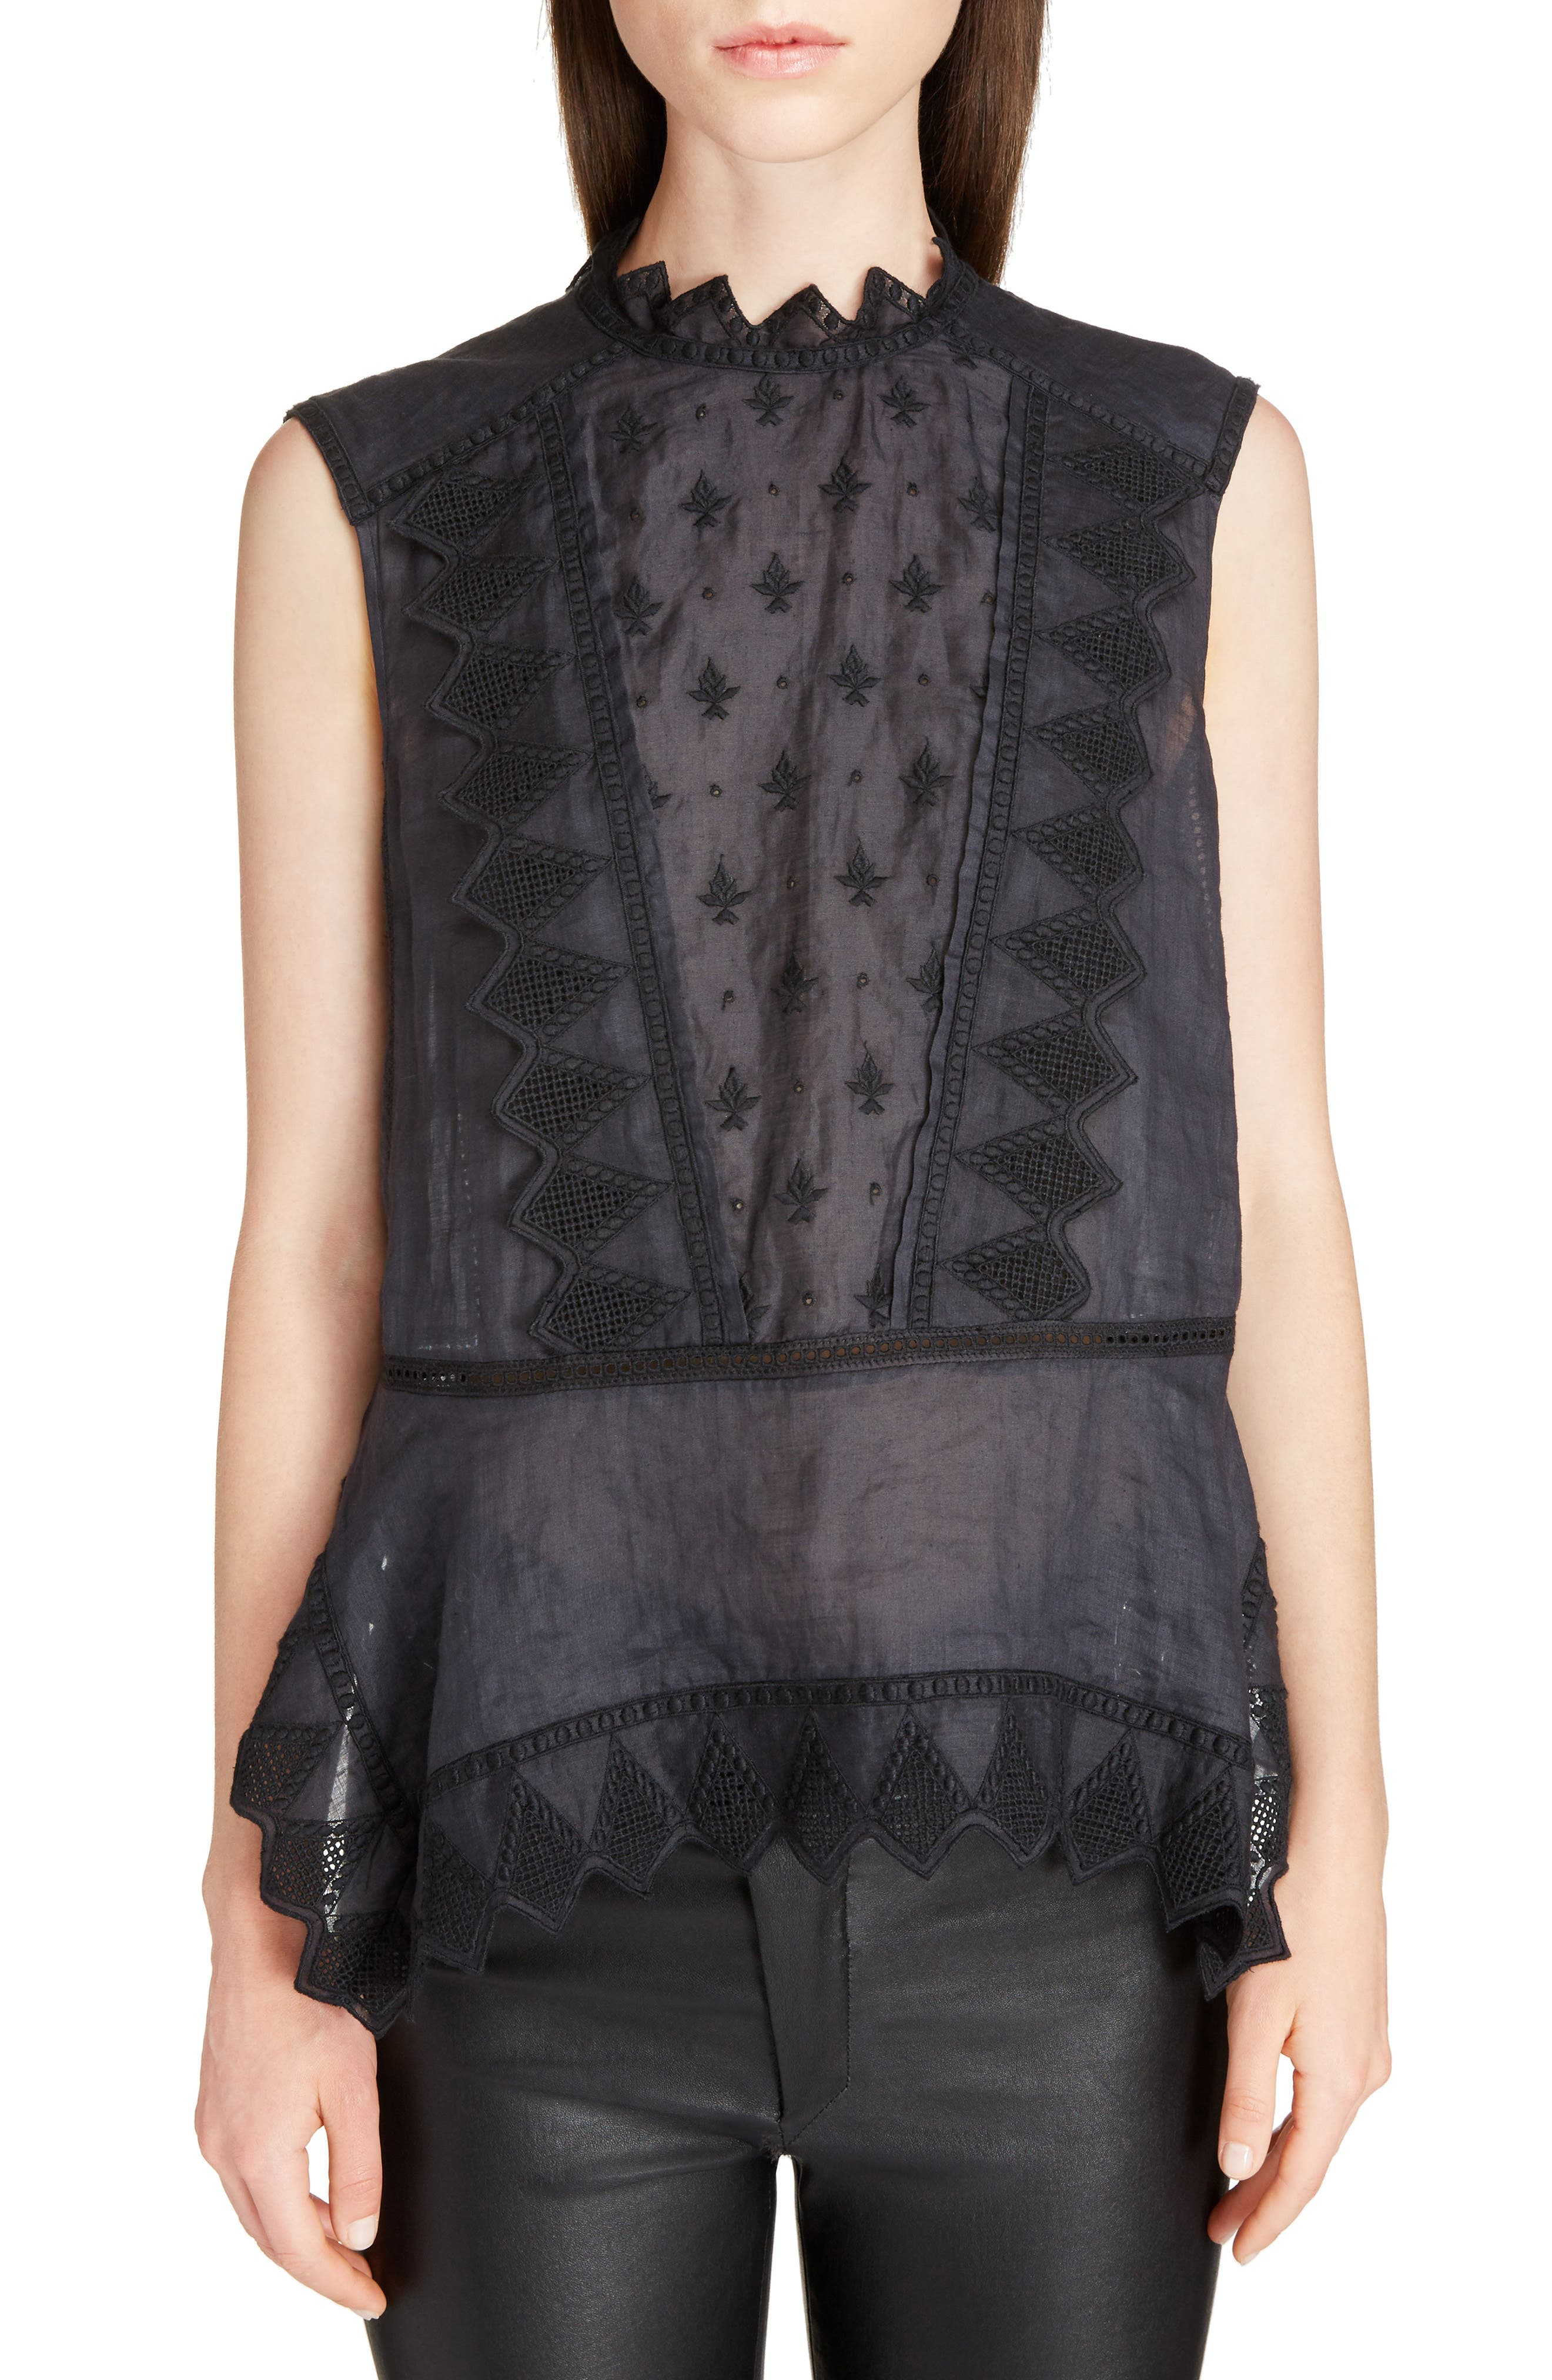 Nust Embroidered Top,                         Main,                         color, Black